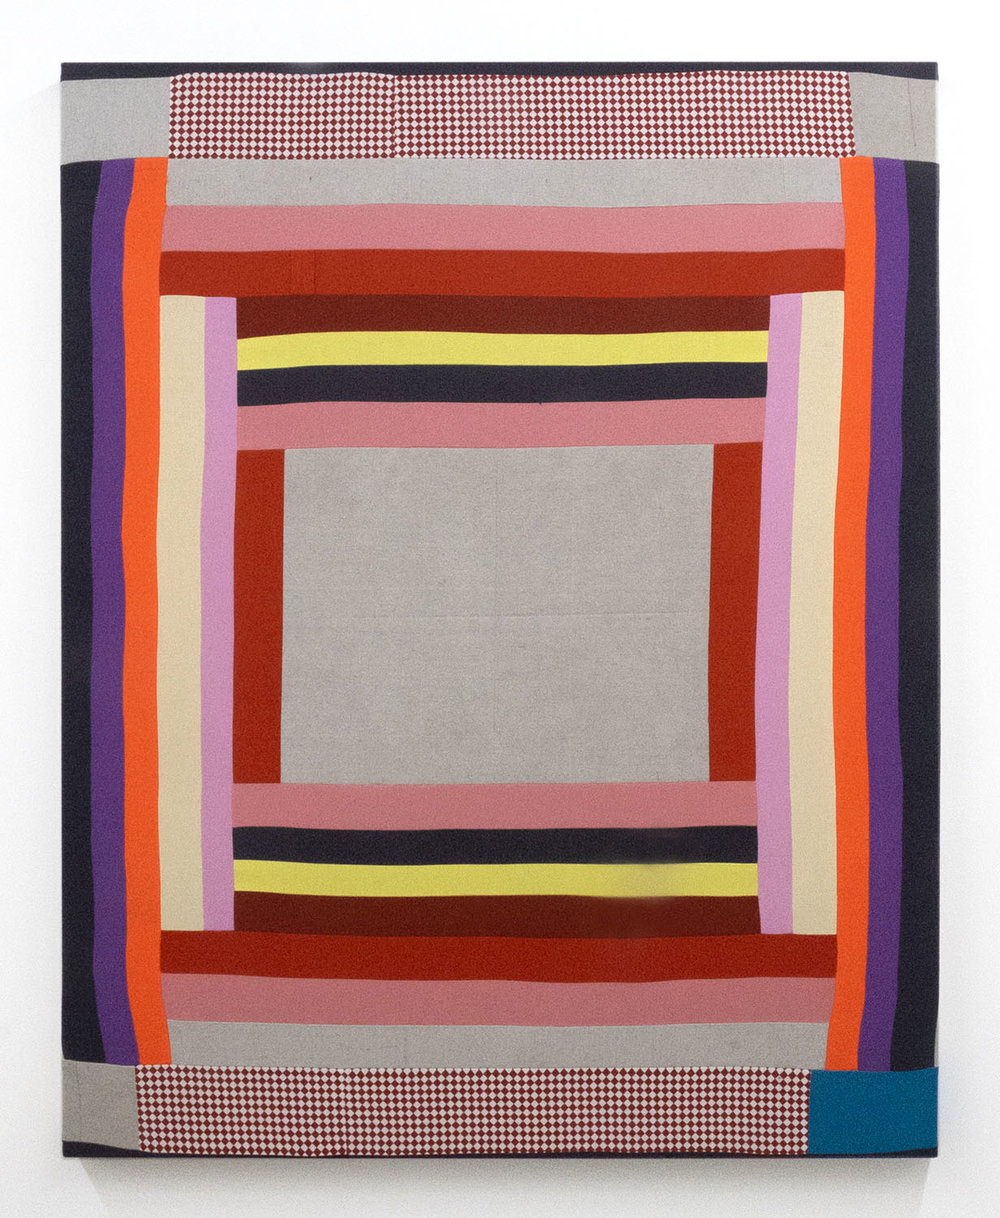 Fever Stitch,   2018 Pieced and sewn cotton and canvas, colored pencil and acrylic 45 x 36 inches (114.3 x 91.4 cm)